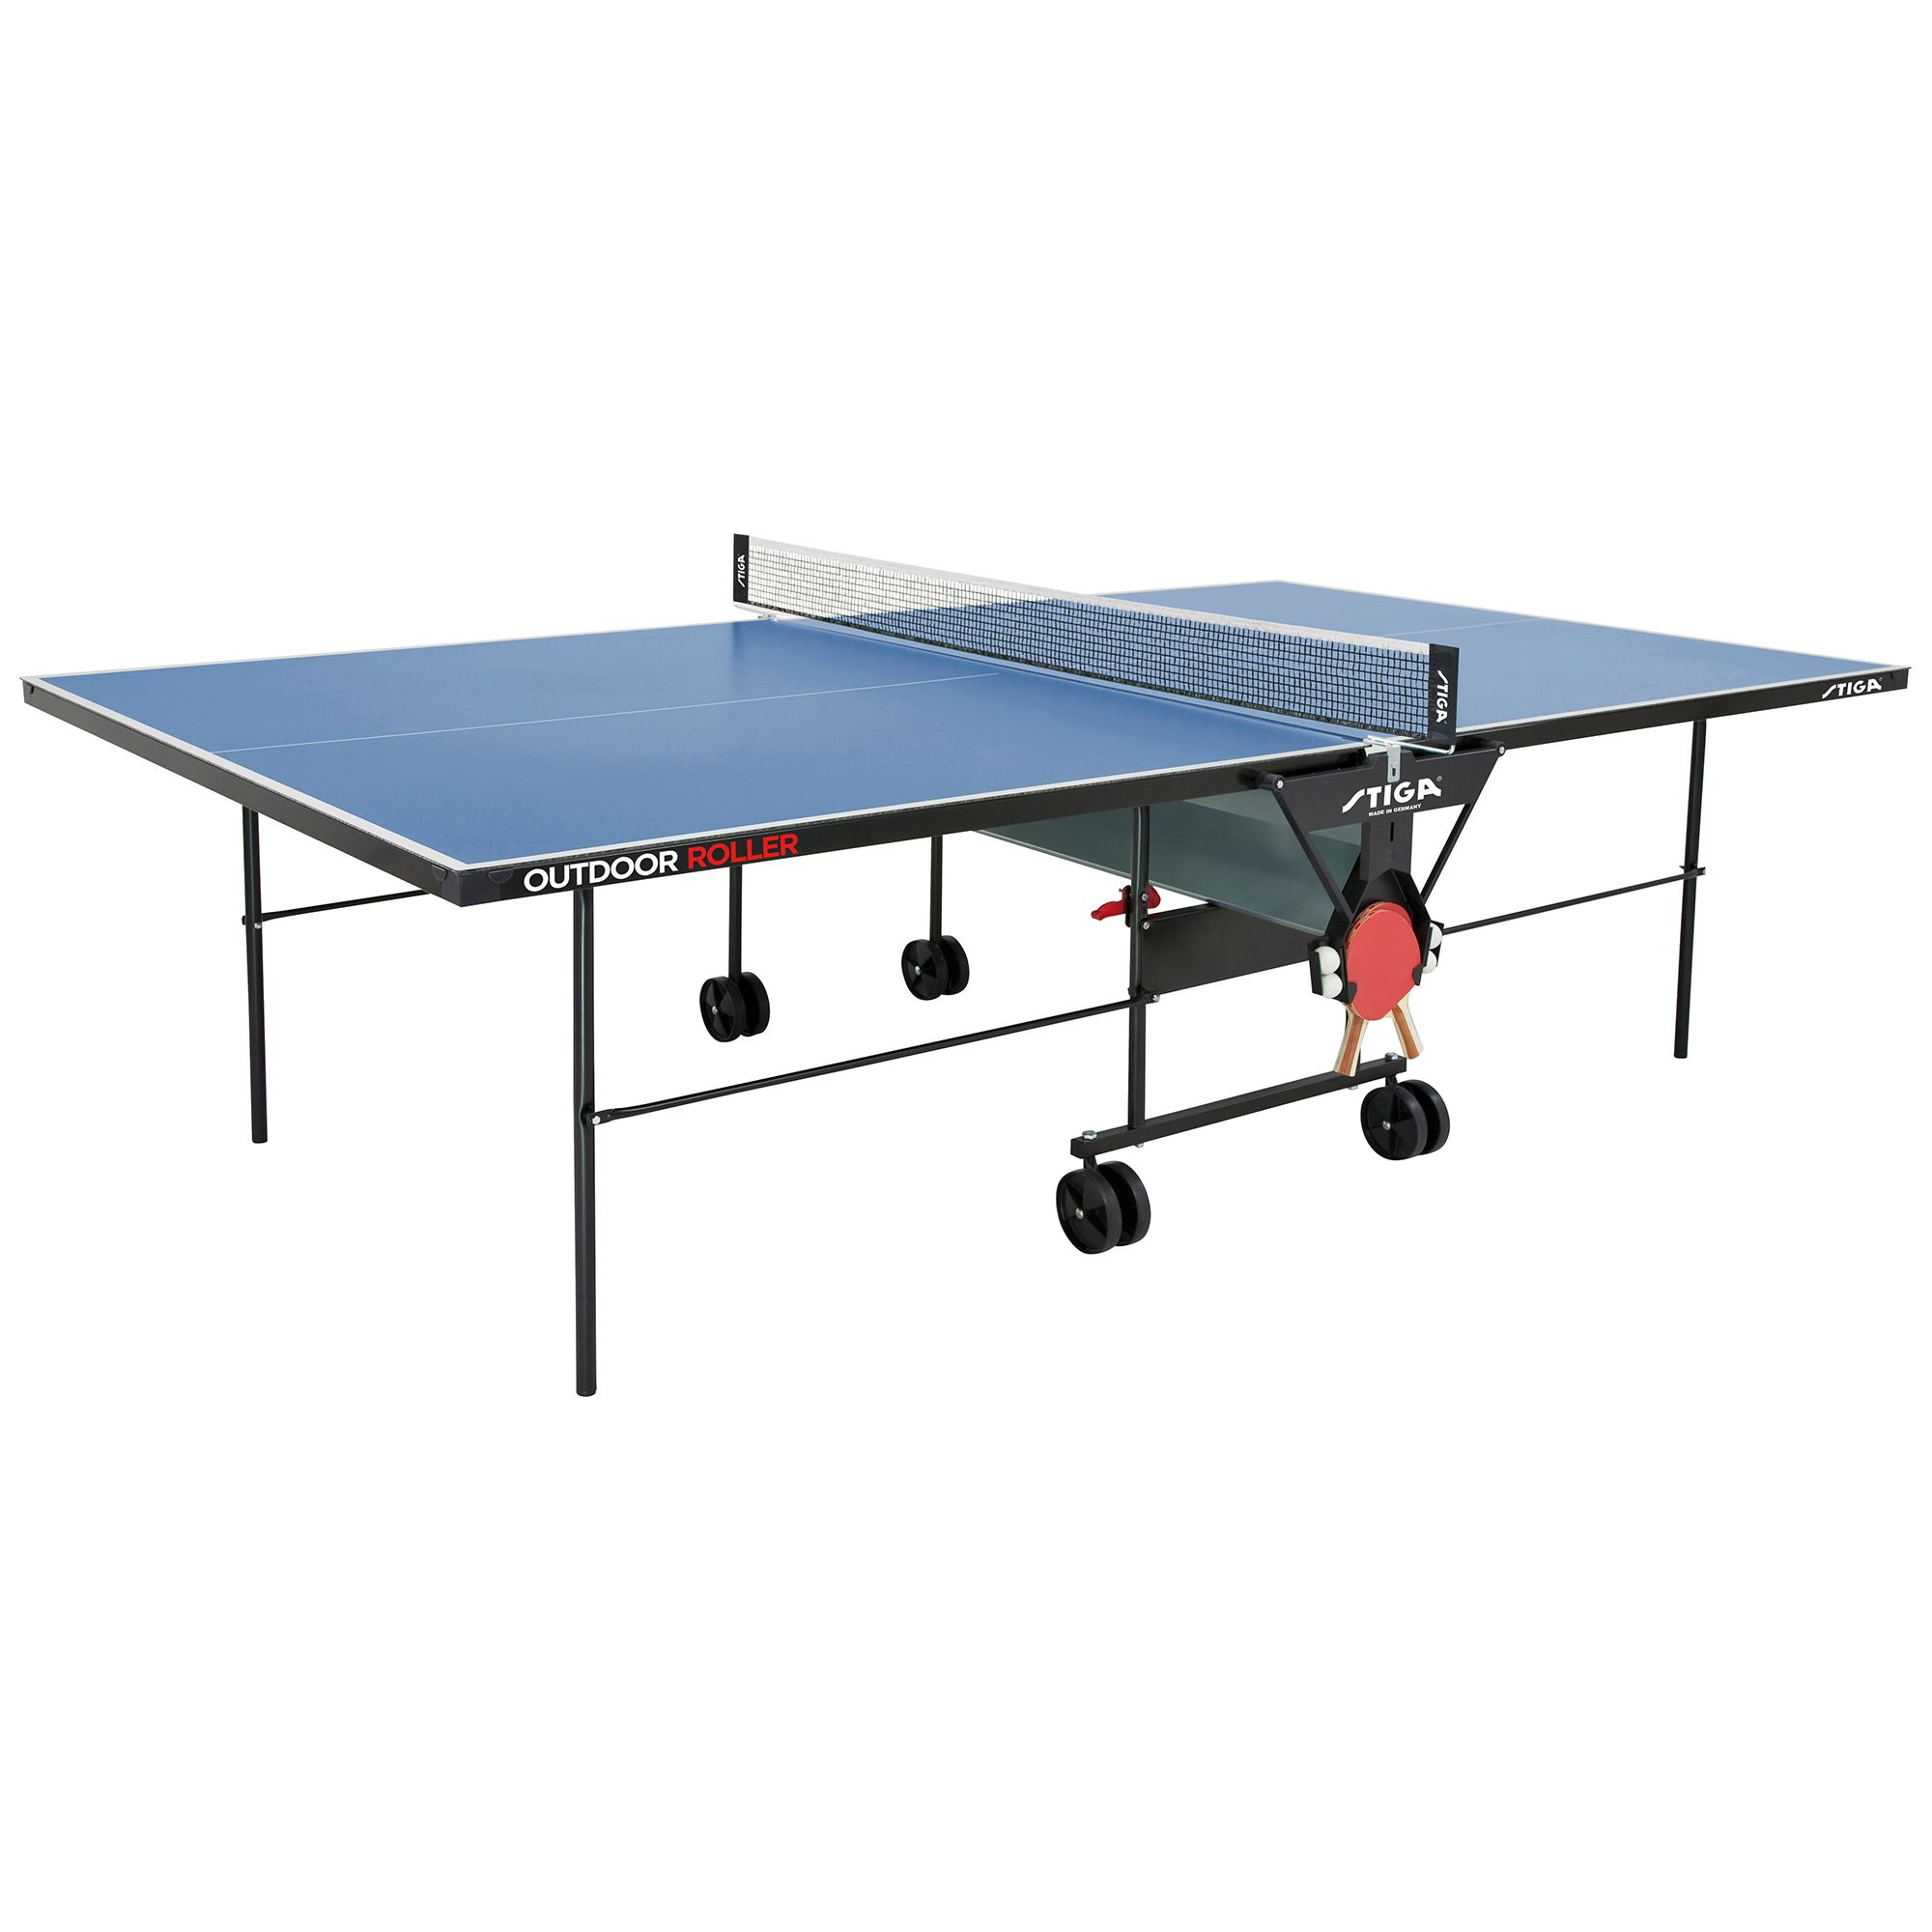 Stiga roller outdoor table tennis table - Stiga outdoor table tennis table ...